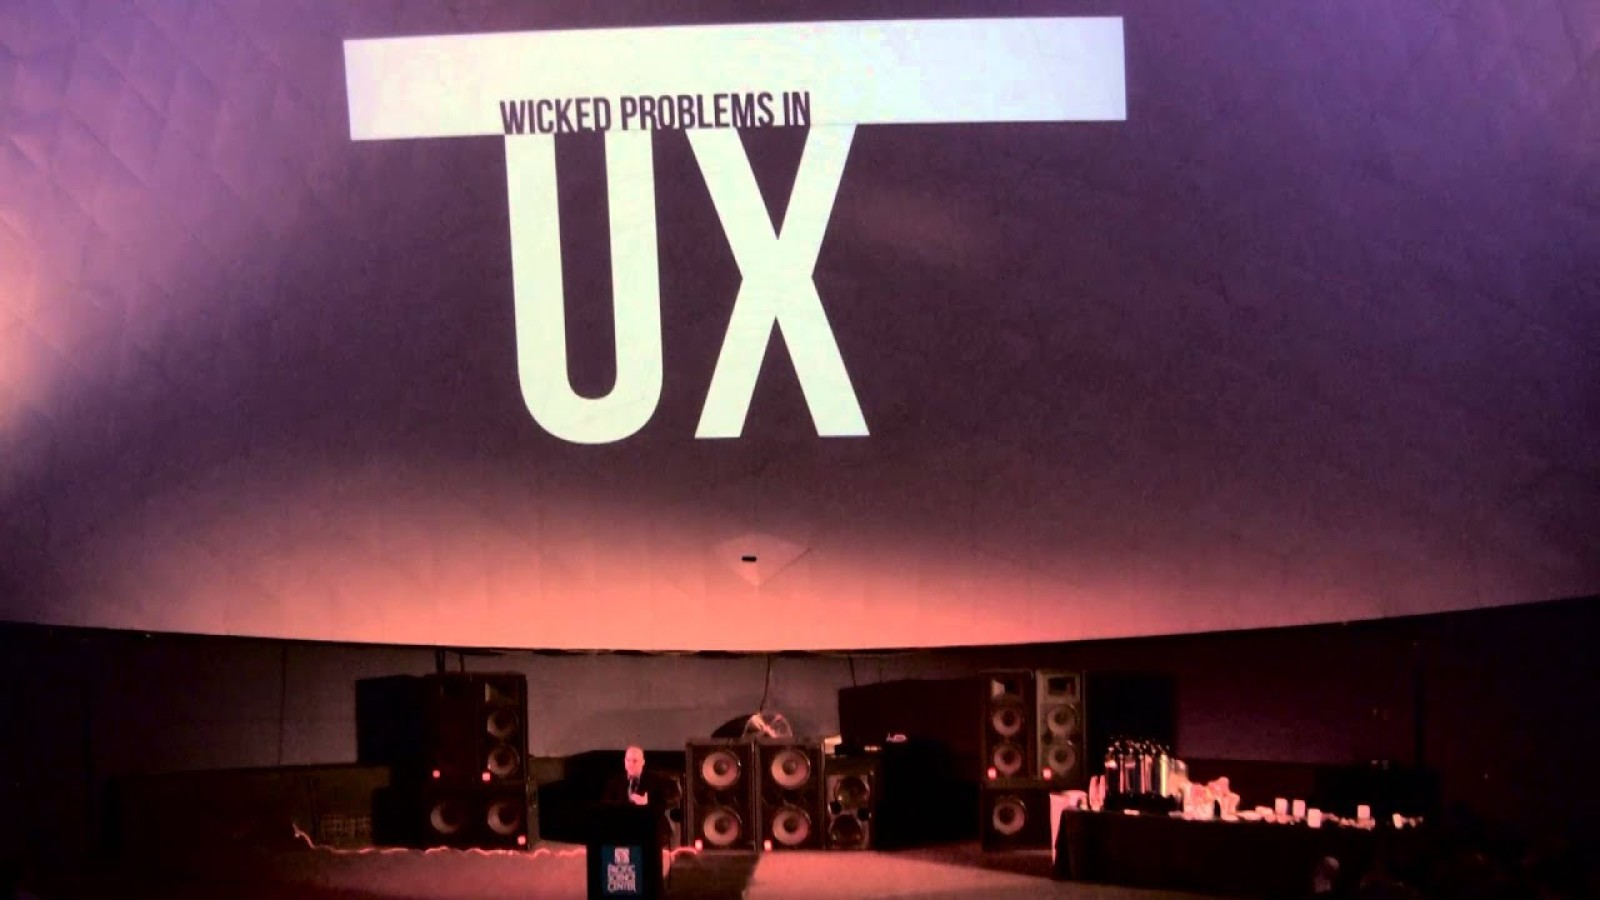 Wicked Ambiguity and User Experience